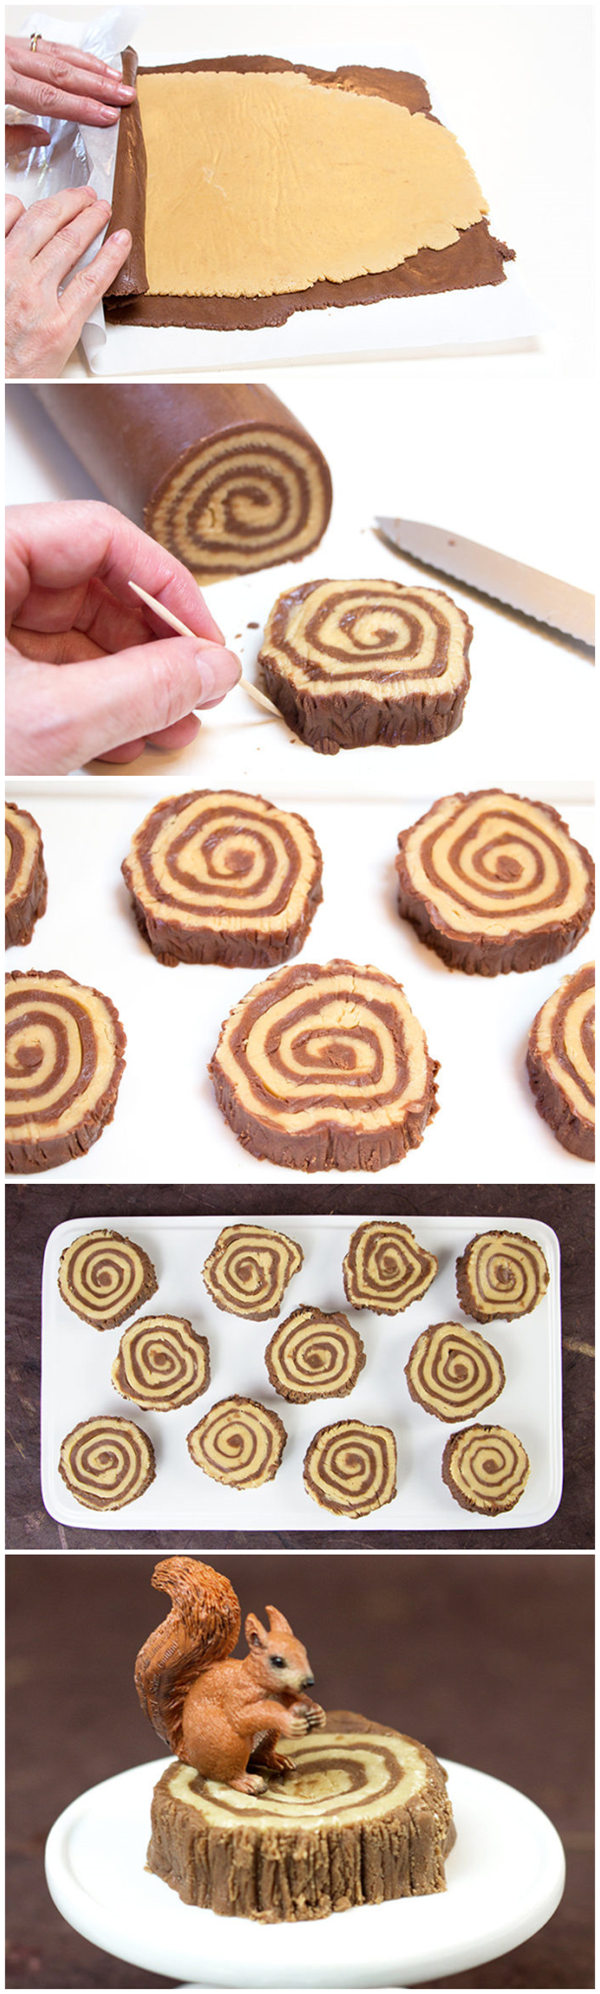 Lumberjacks Rejoice! A Recipe For Fudge Tree Rings